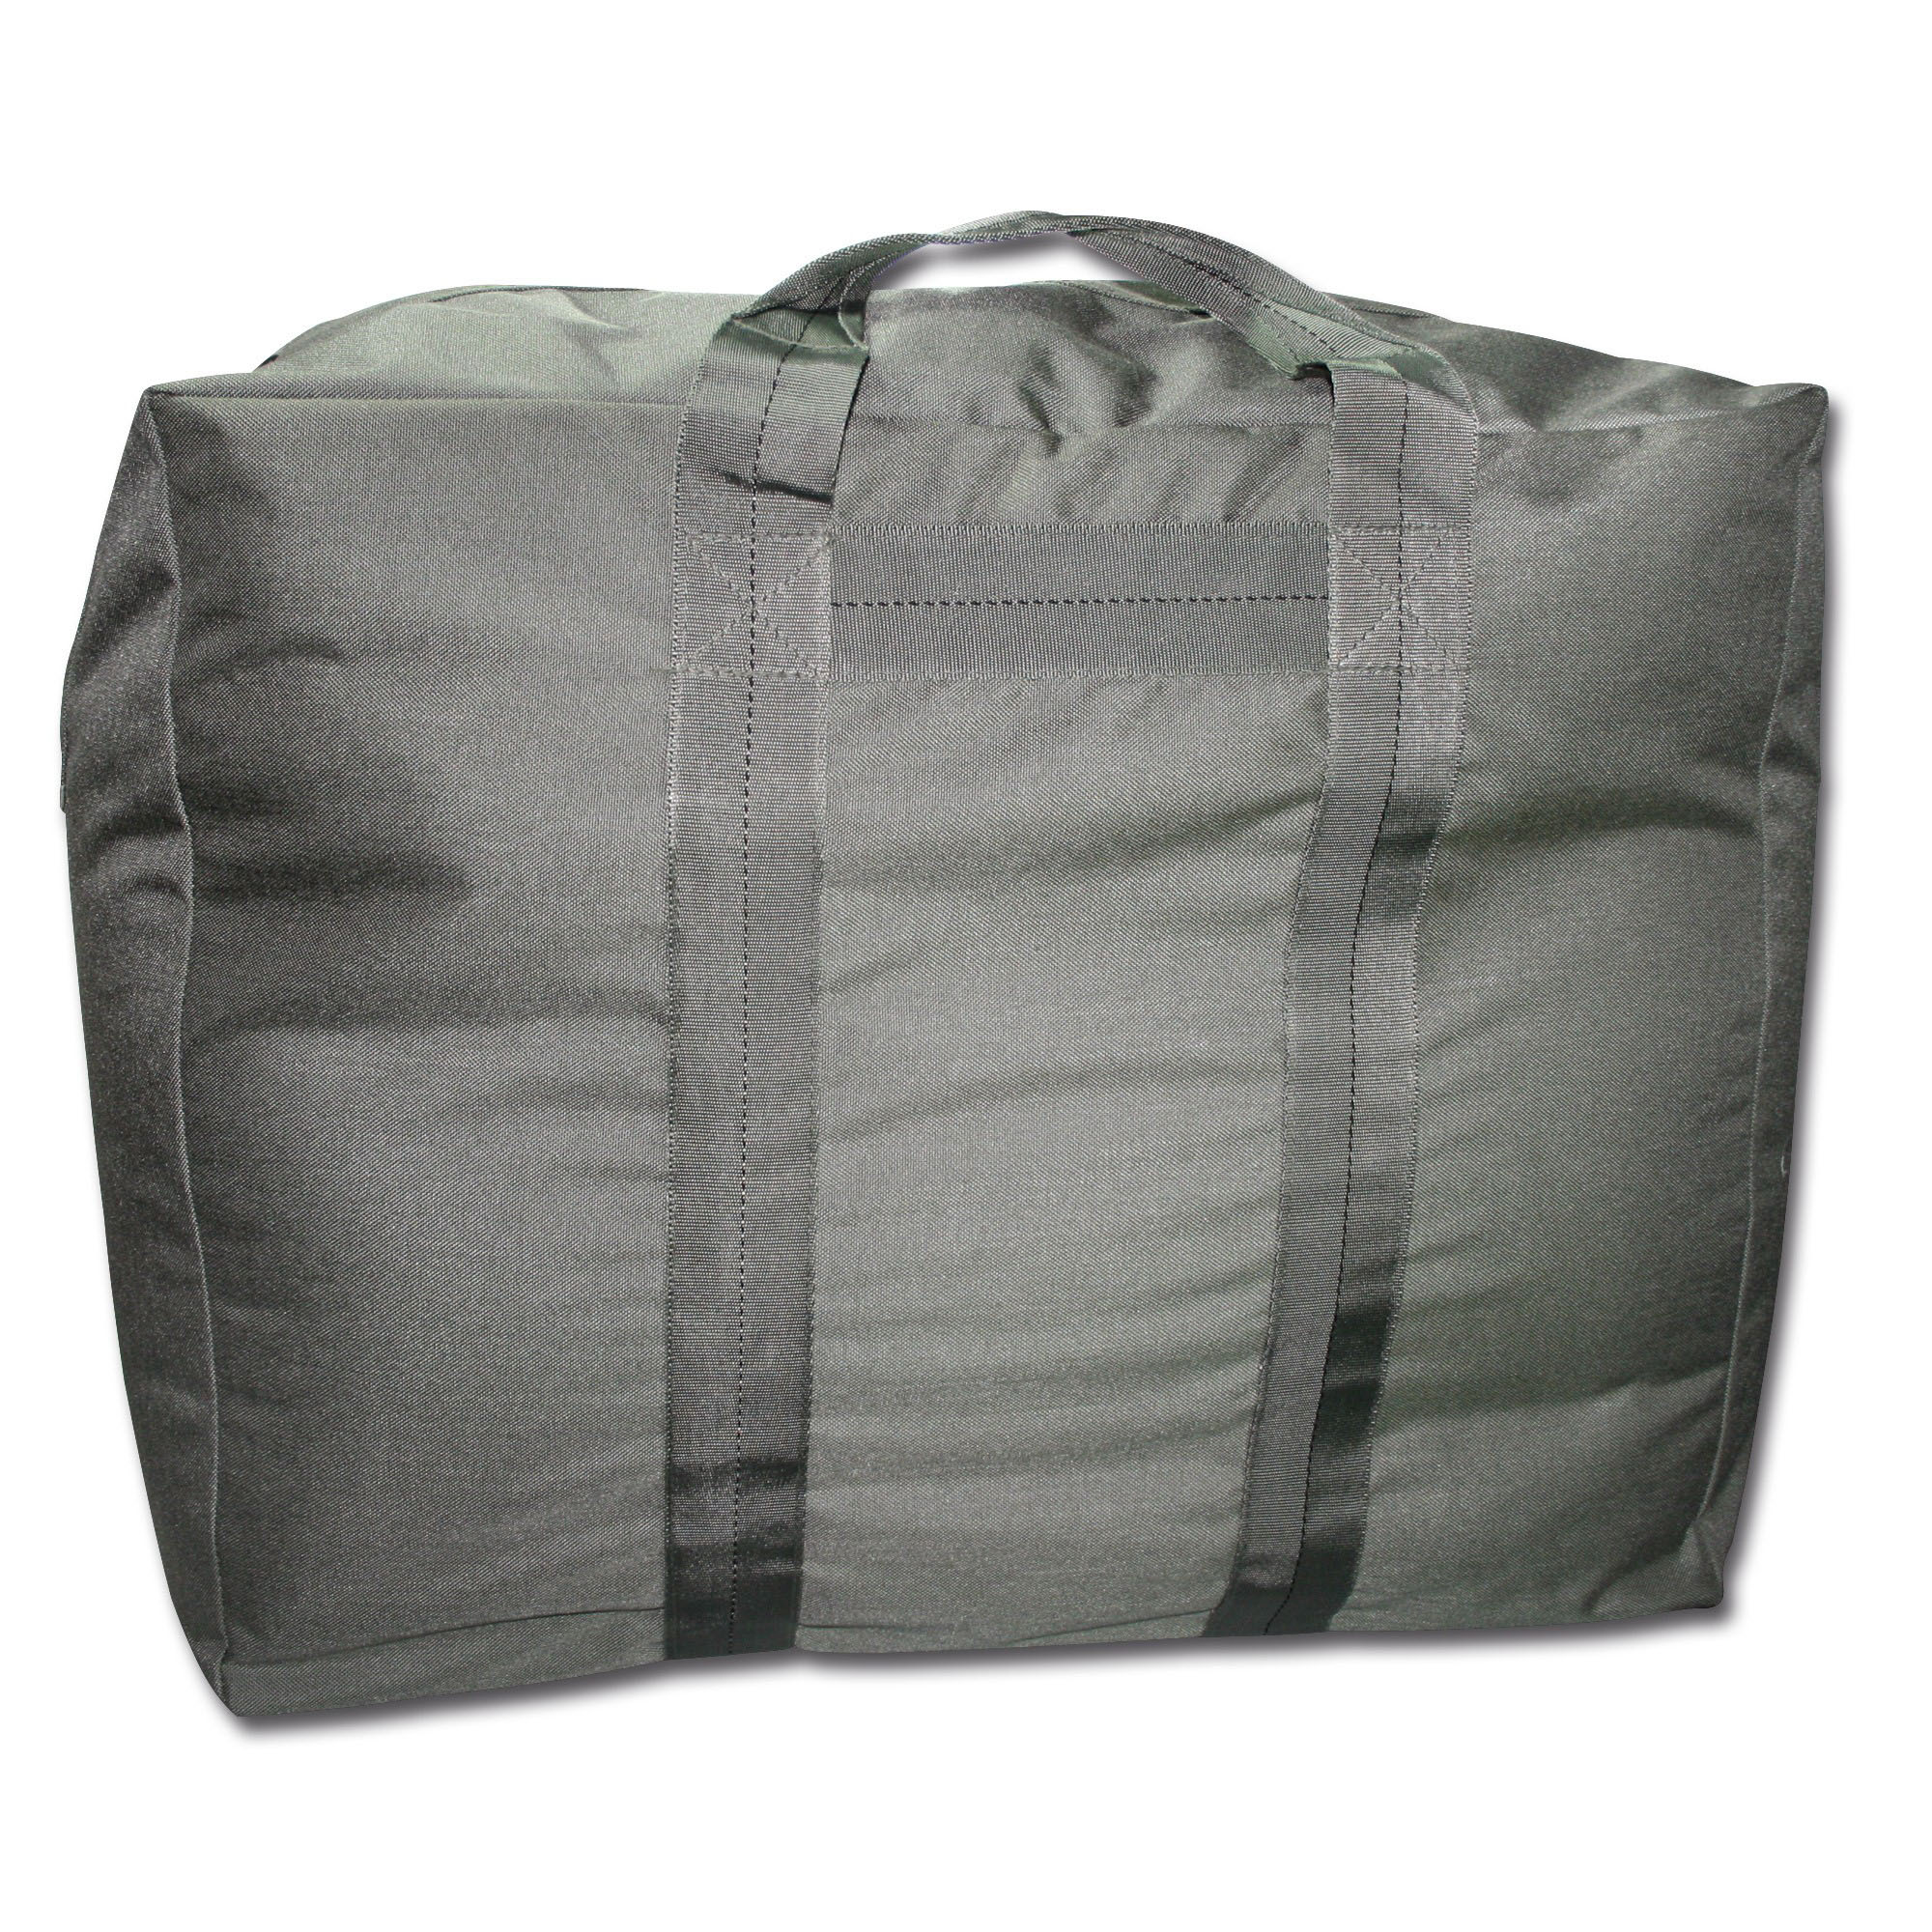 Flight Kit Bag foliage